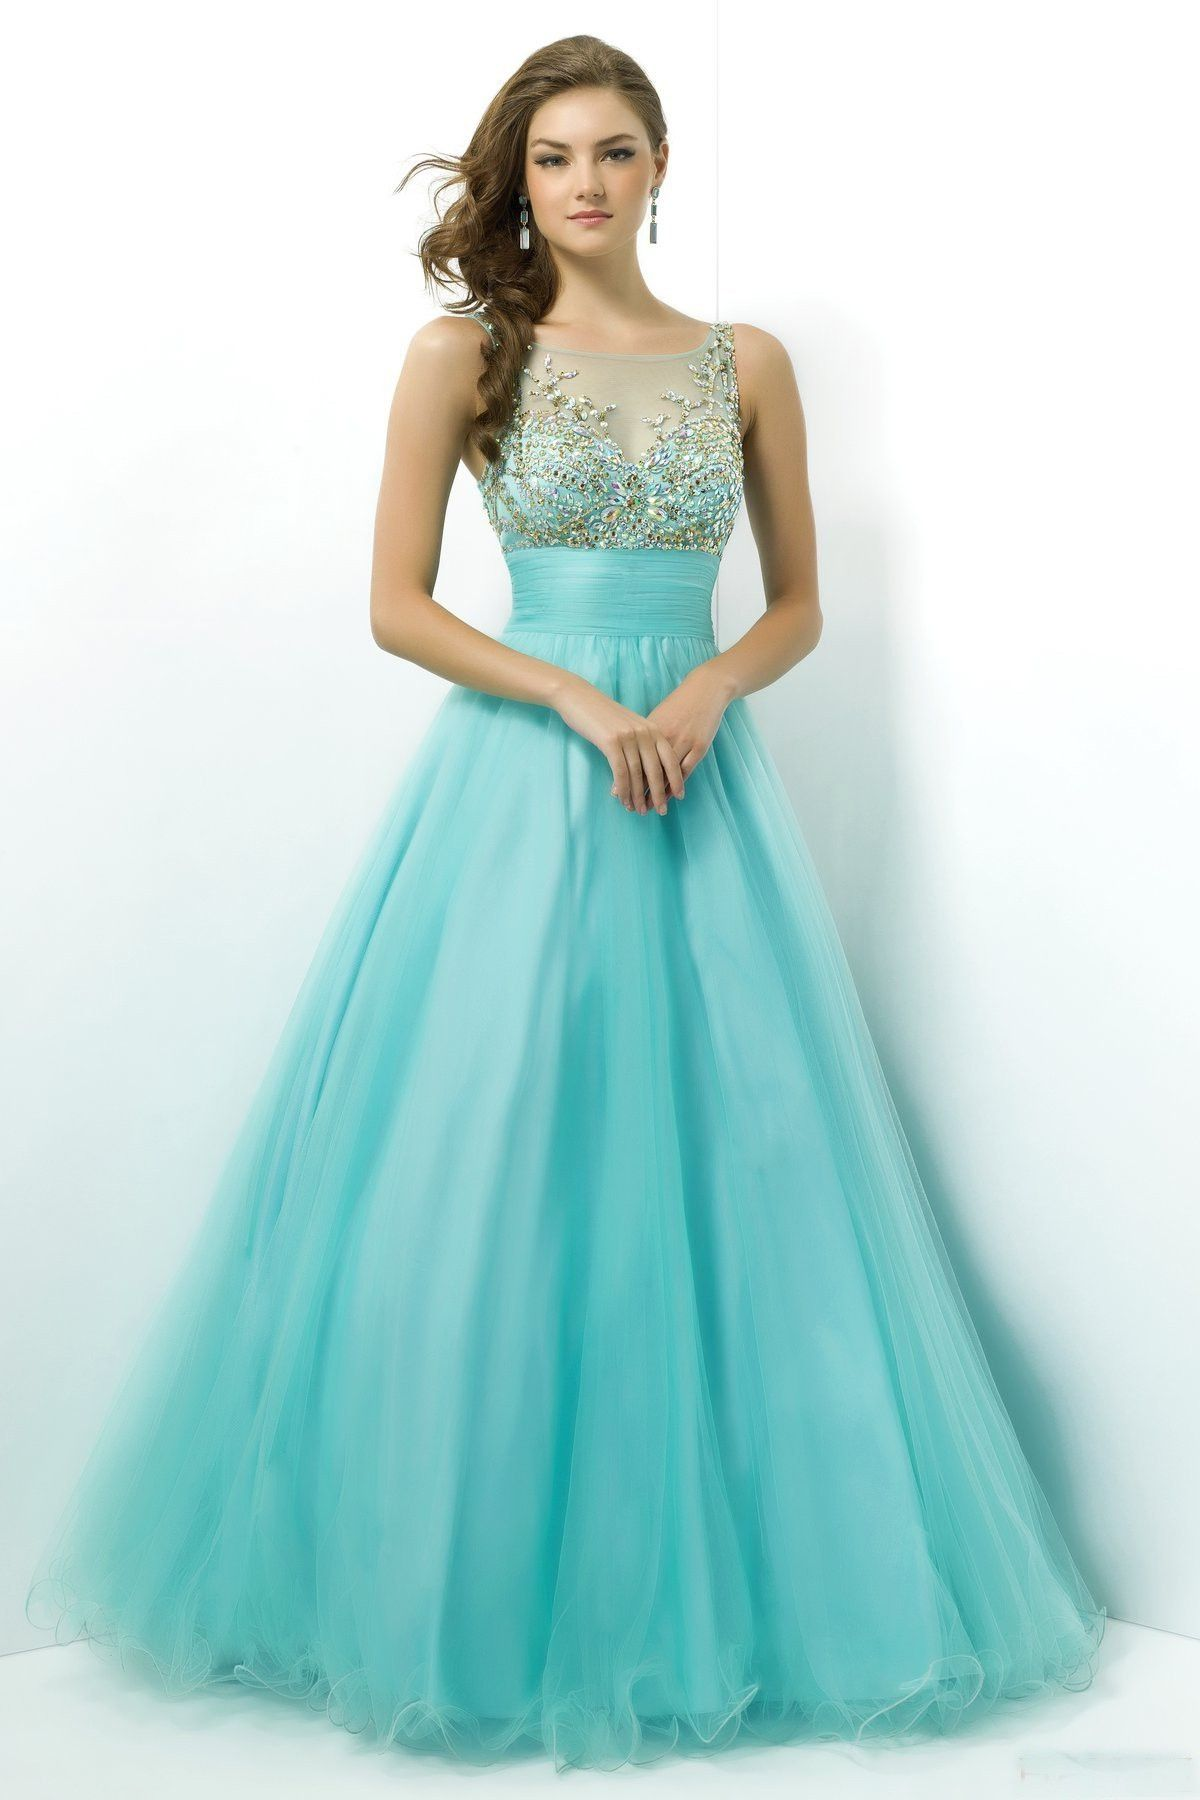 prom dresses prom dresses long prom dresses for teens 2015 bateau ...